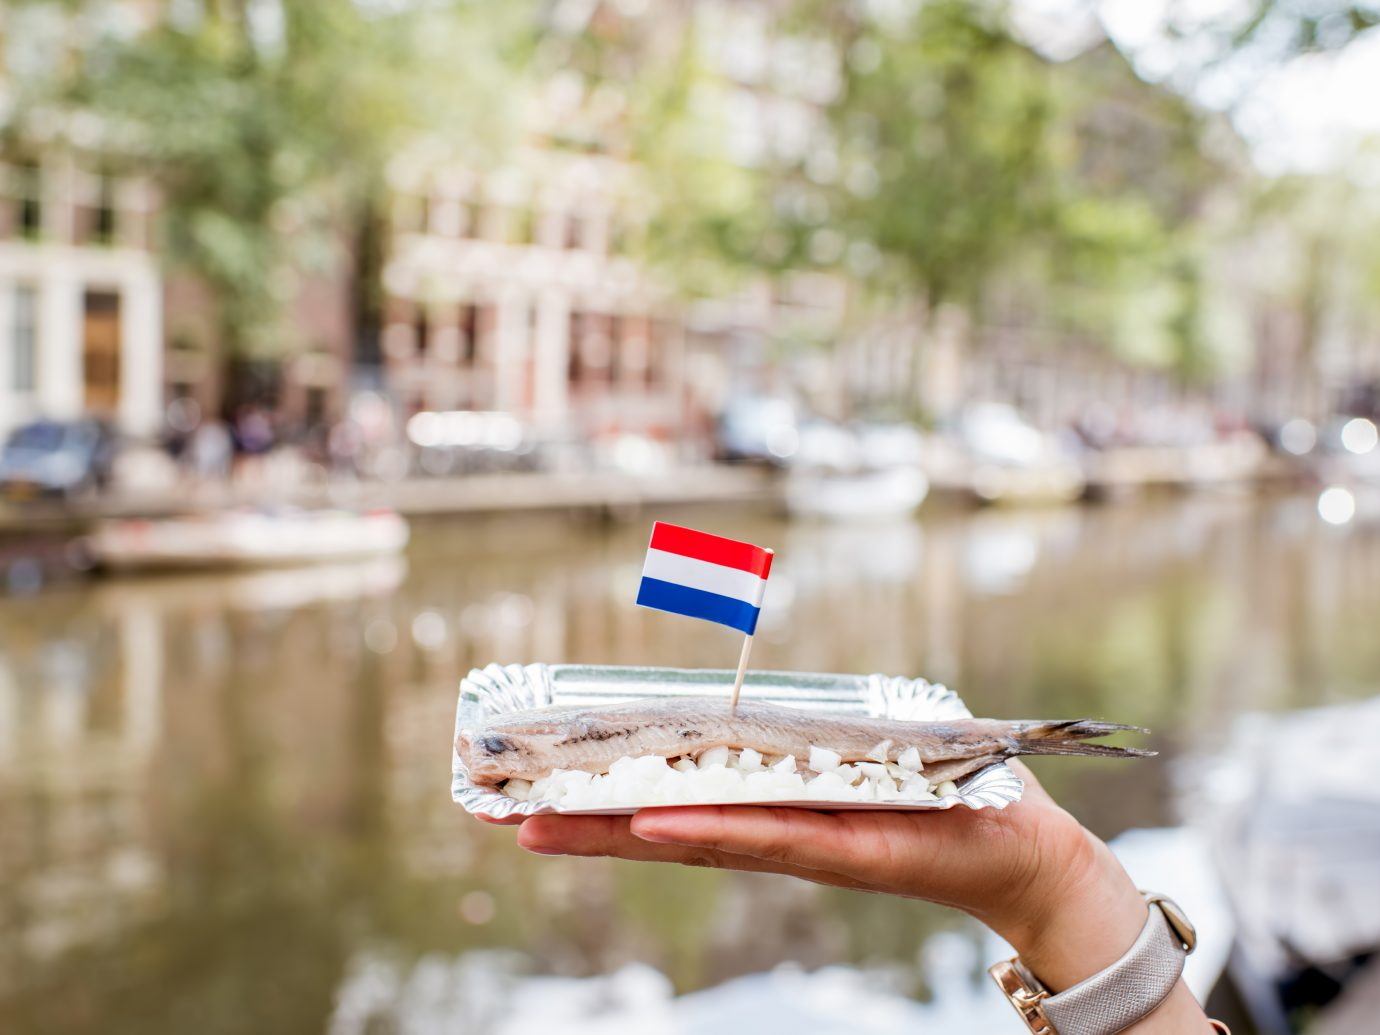 Holding a fresh harring with onion and netherland flag on the water channel background in Amsterdam